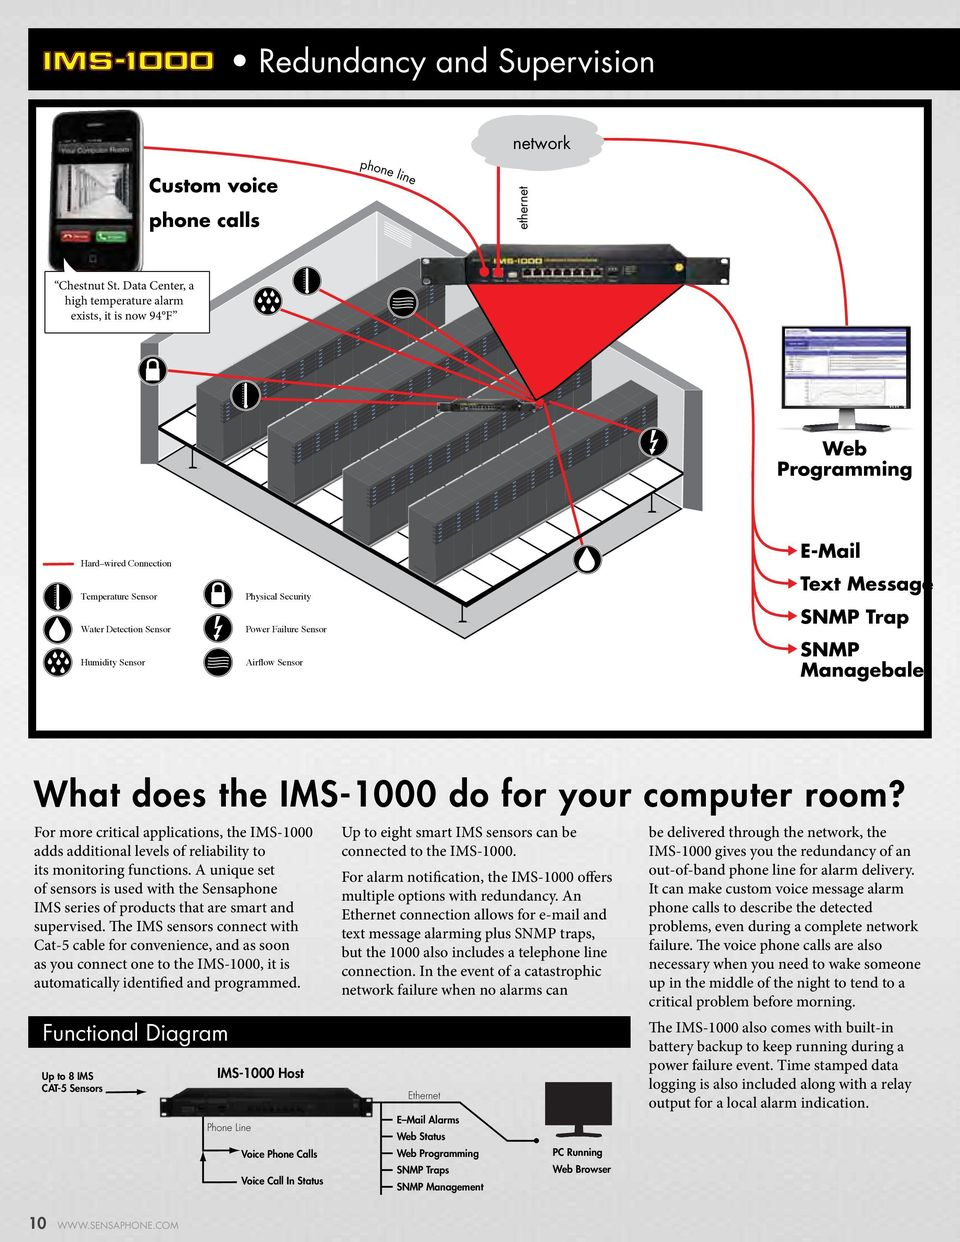 SNMP Trap SNMP Managebale What does the IMS-1000 do for your computer room? For more critical applications, the IMS-1000 adds additional levels of reliability to its monitoring functions.